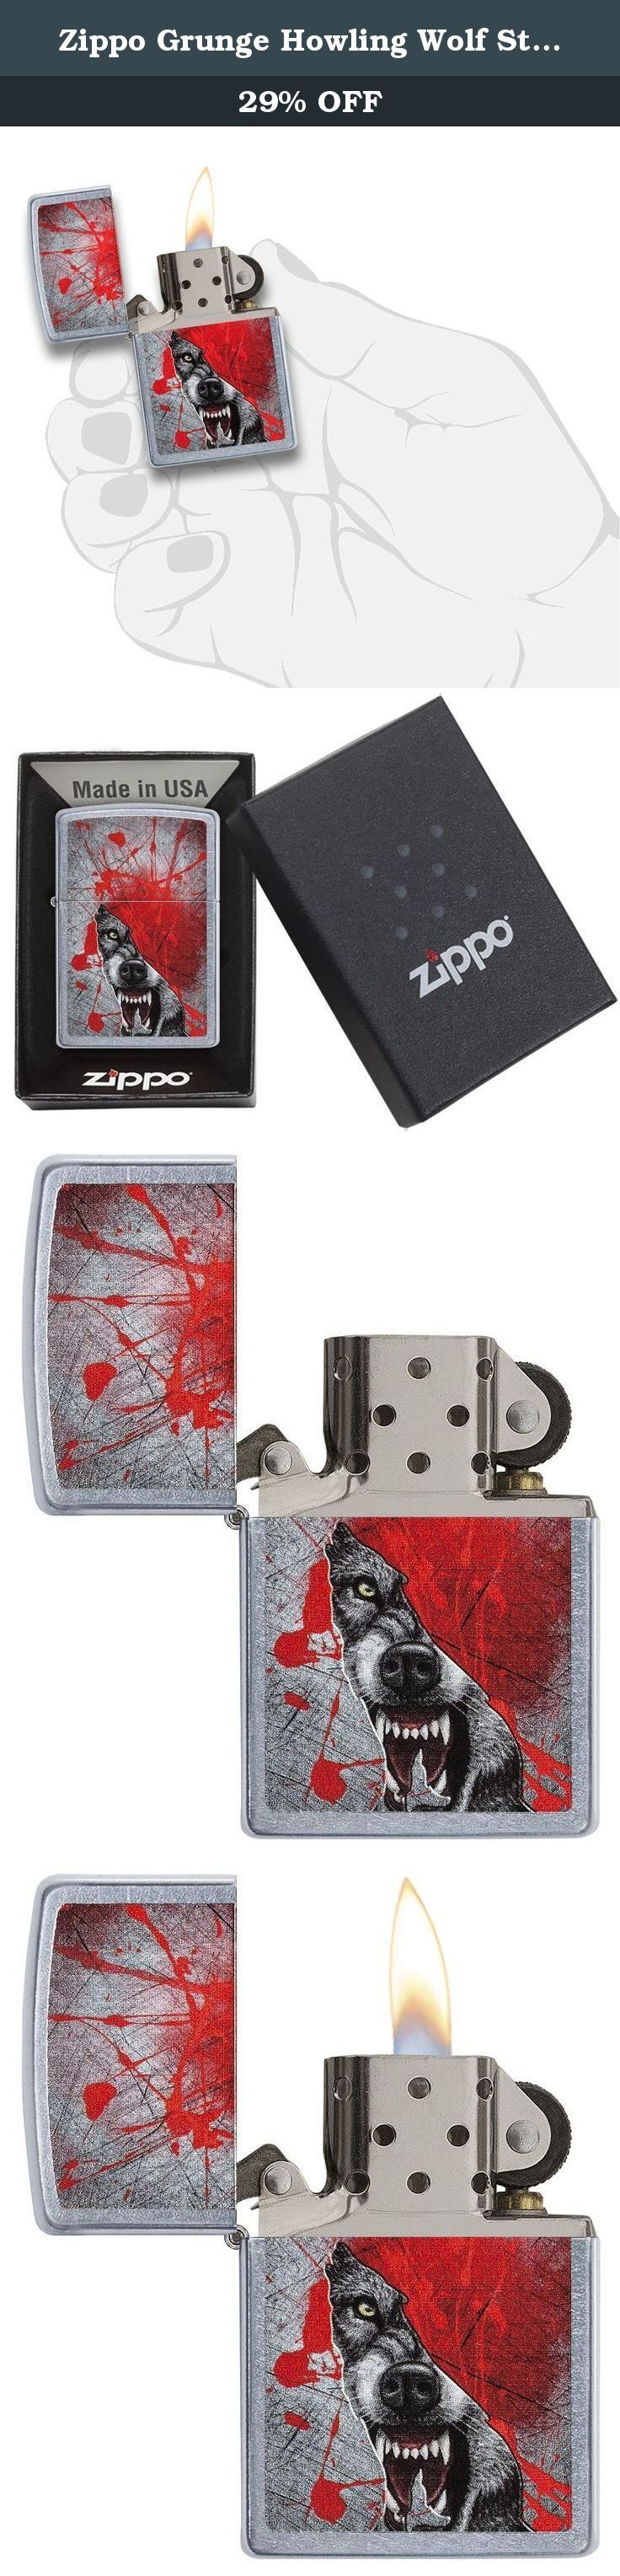 Zippo Grunge Howling Wolf Street Chrome Pocket Lighter. This street chrome™ windproof lighter features an image of a fierce Wolf surrounded by a red and grey Grunge background color imaged on this lighter. Comes packaged in an environmentally friendly gift box. For optimal performance, fill with Zippo premium lighter fluid.